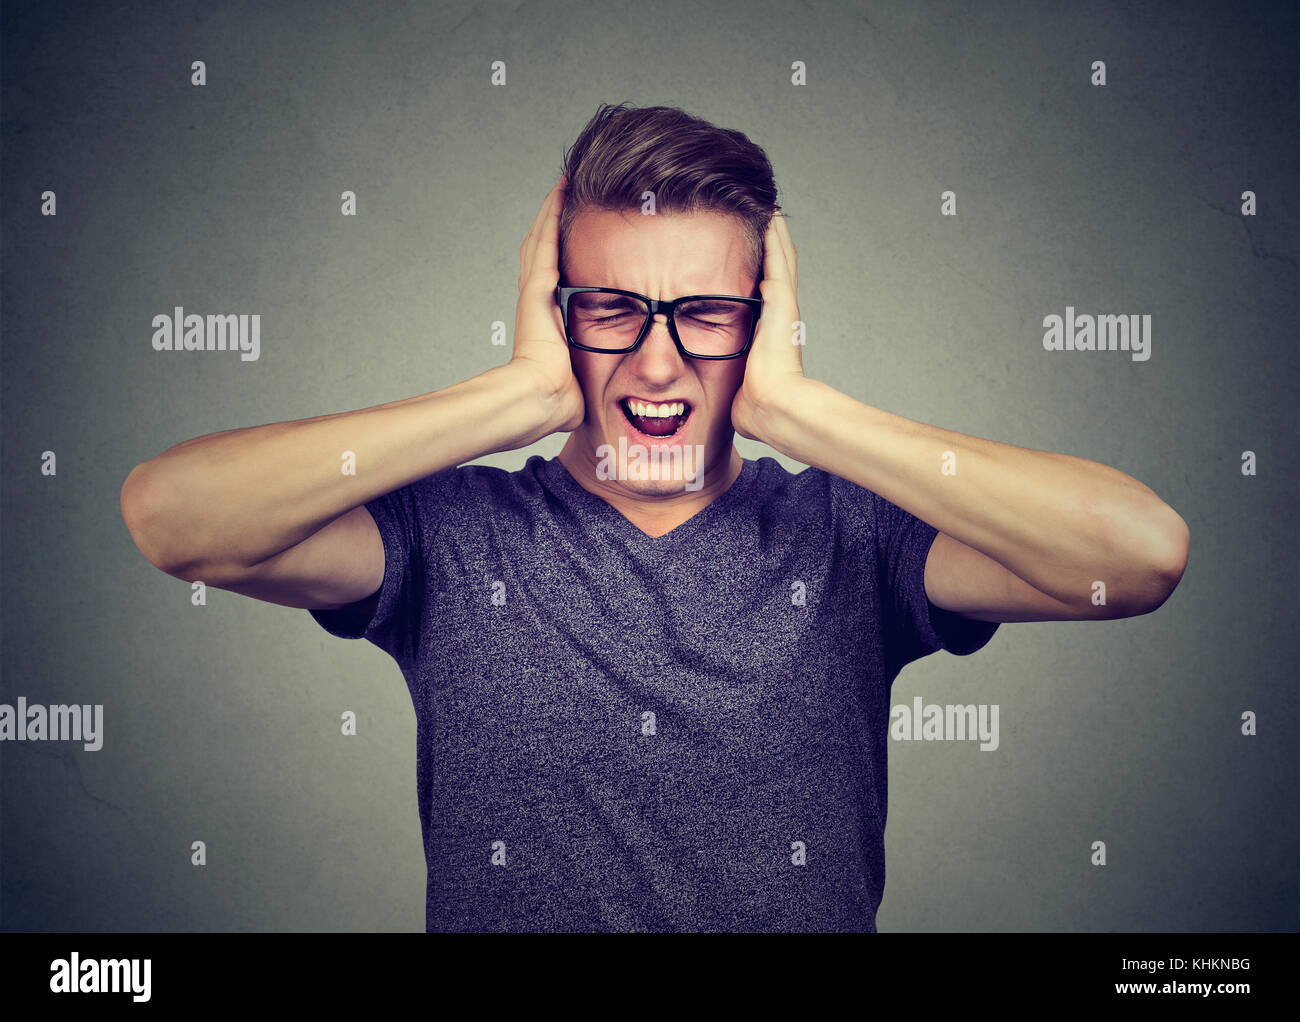 stressed man frustrated can't tolerate anymore loud noise. Negative human emotions - Stock Image